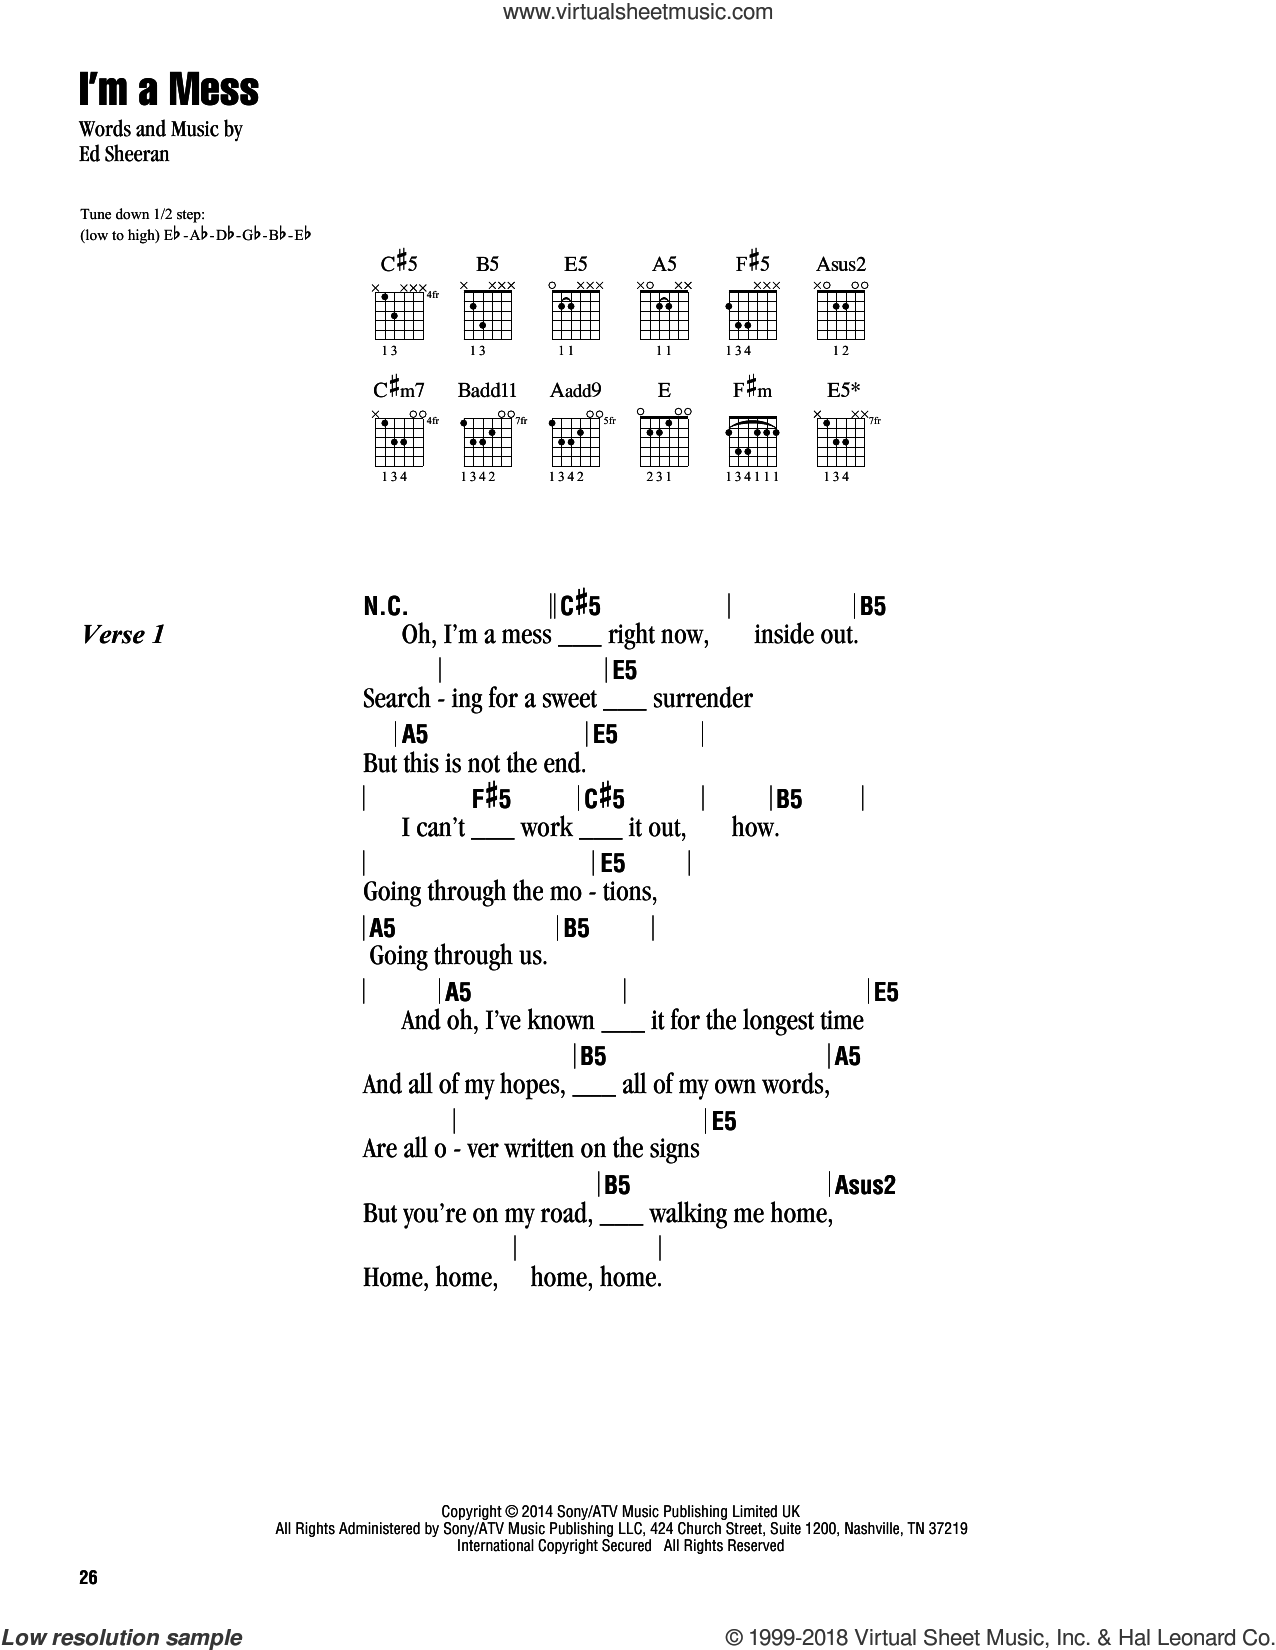 I'm A Mess sheet music for guitar (chords) by Ed Sheeran. Score Image Preview.